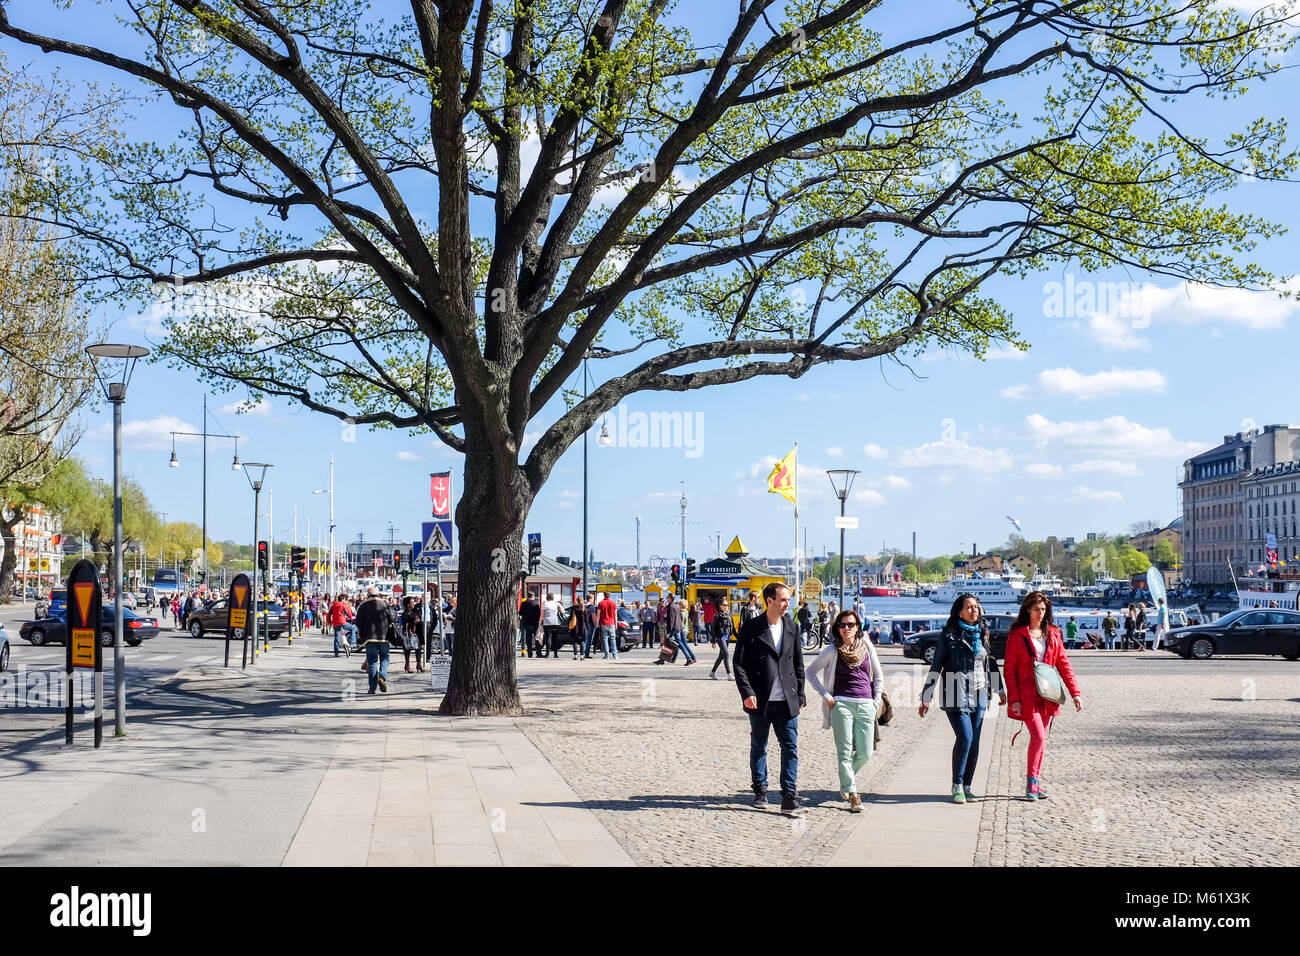 Tourists stroll at Nybroplan during springtime in Stockhom. Stockholm is a major travel destination. - Stock Image